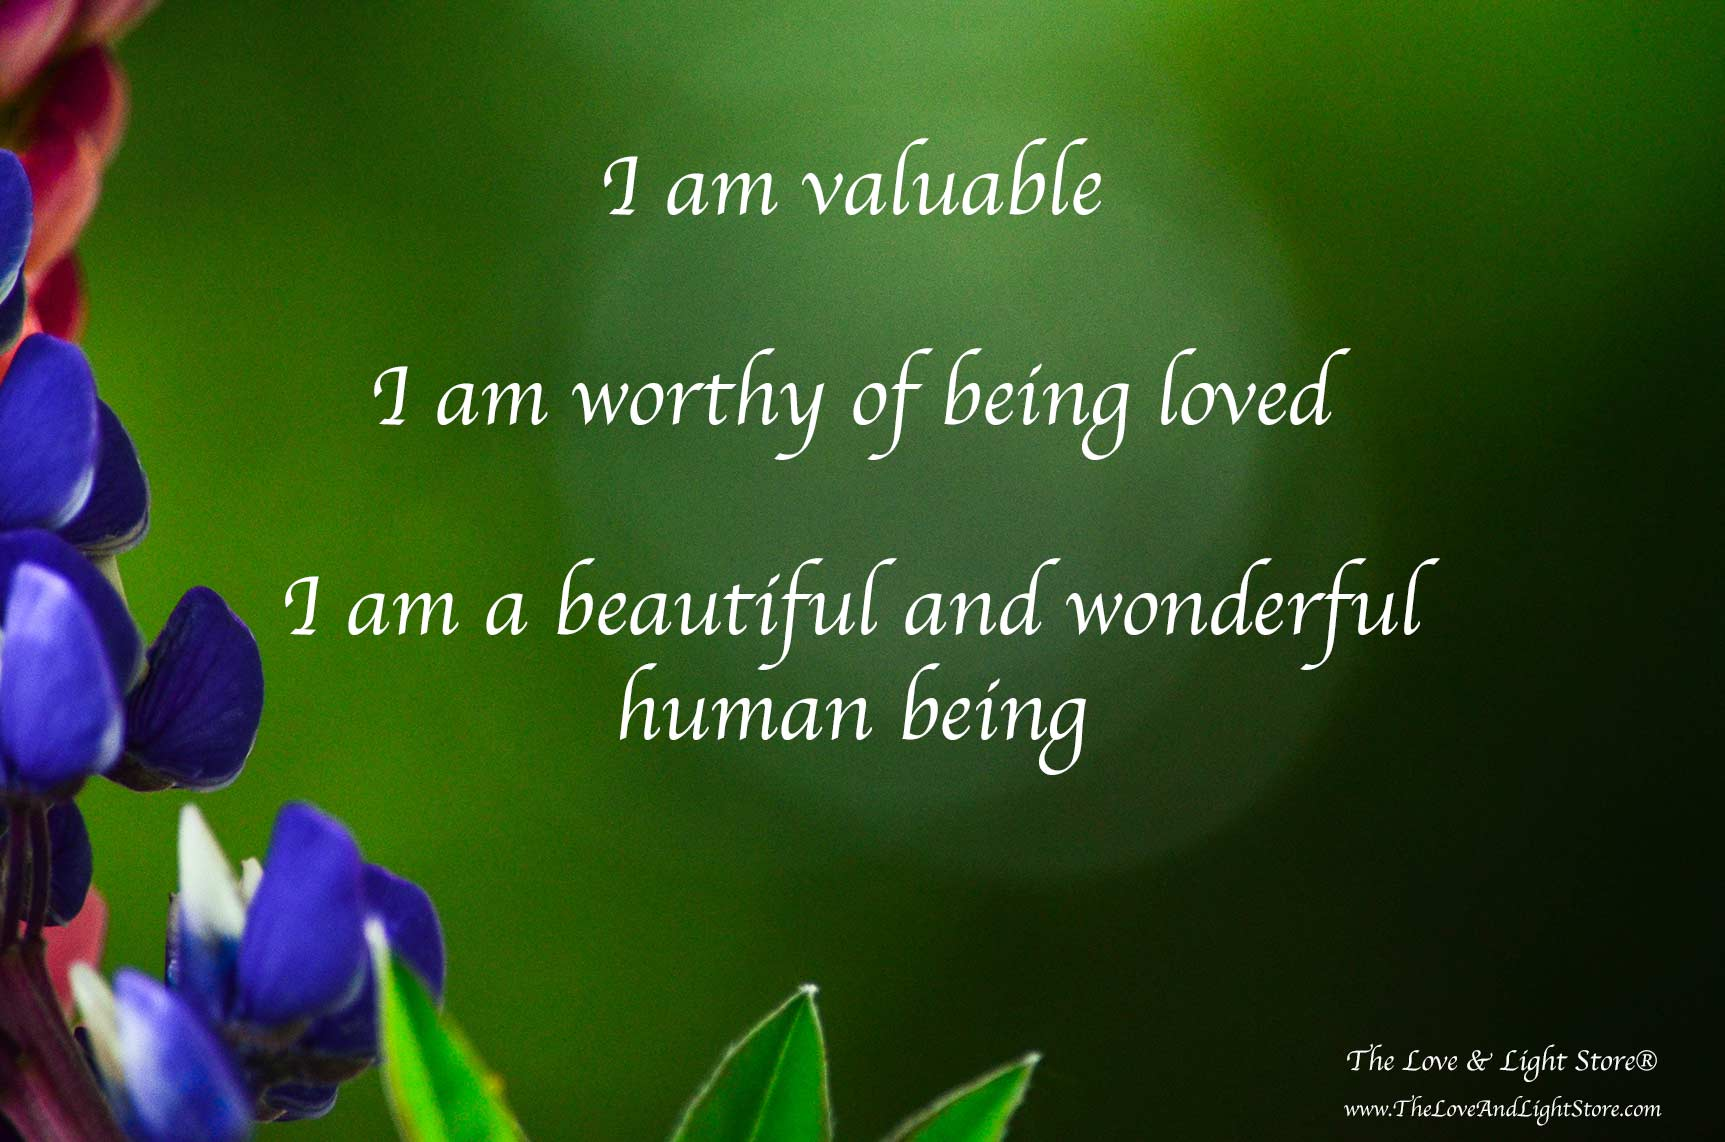 Self love affirmation for an inner realization of worth and value